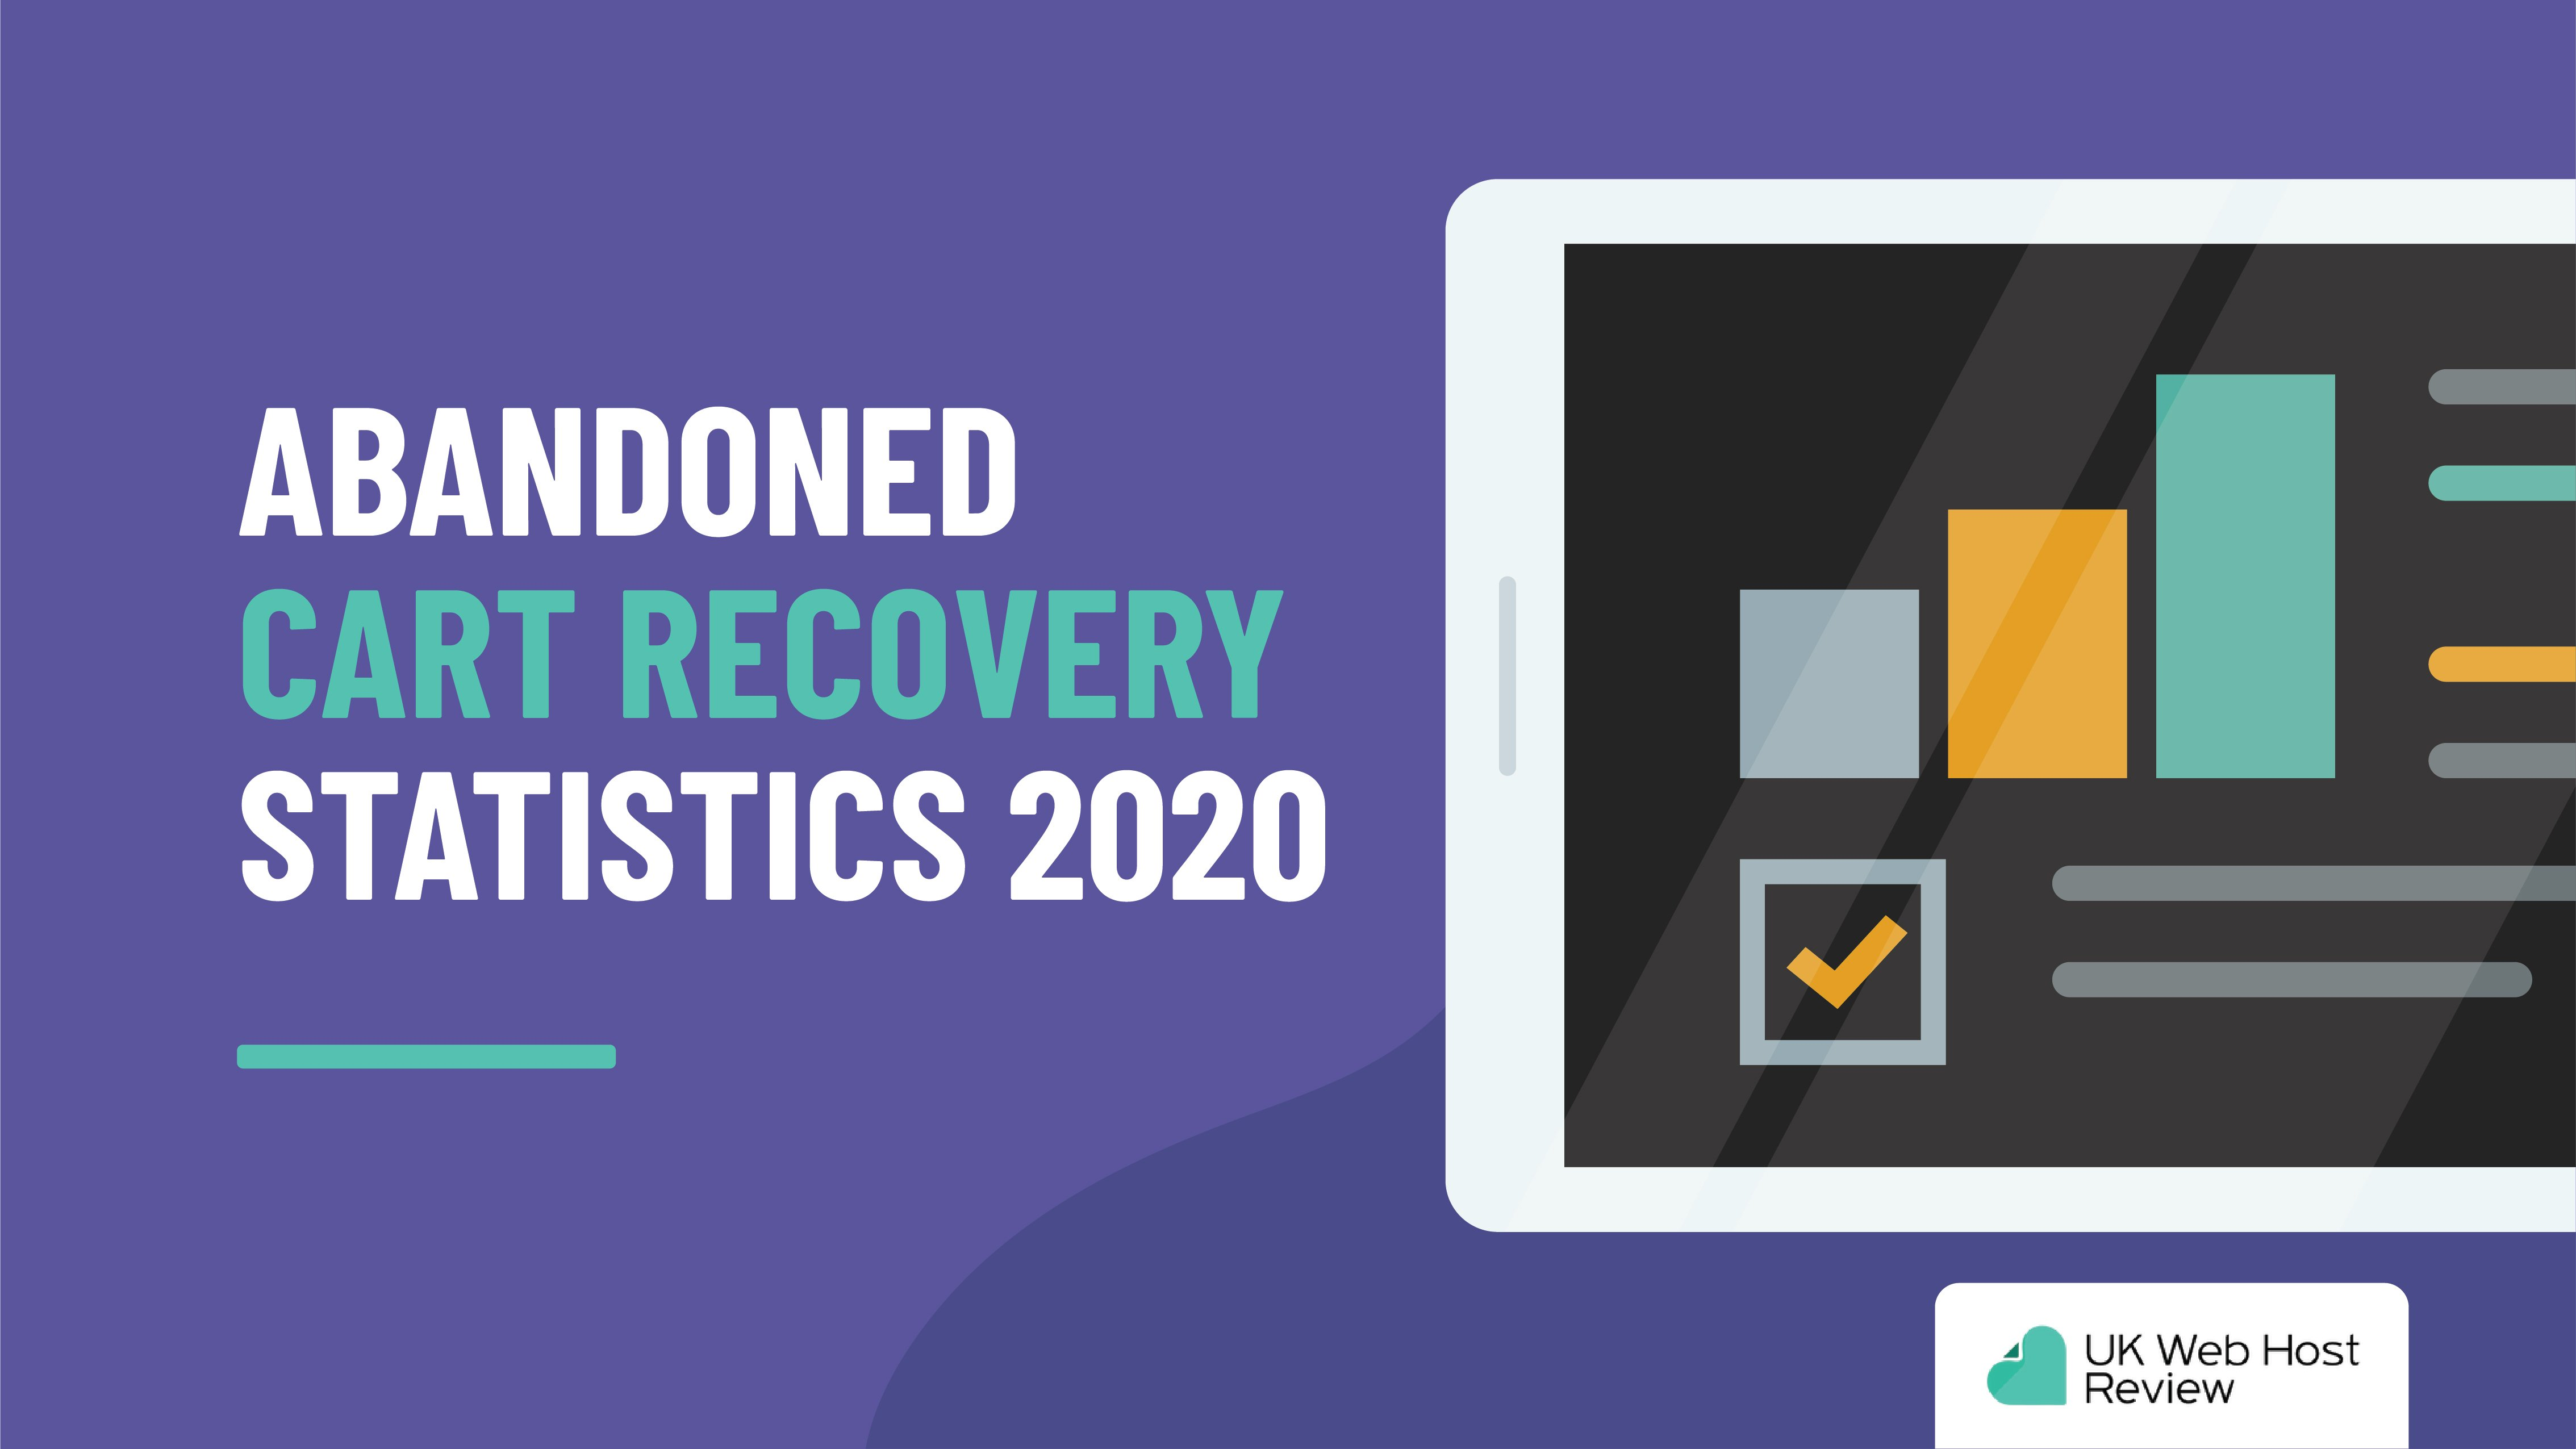 Abandoned Cart Recovery Statistics 2020